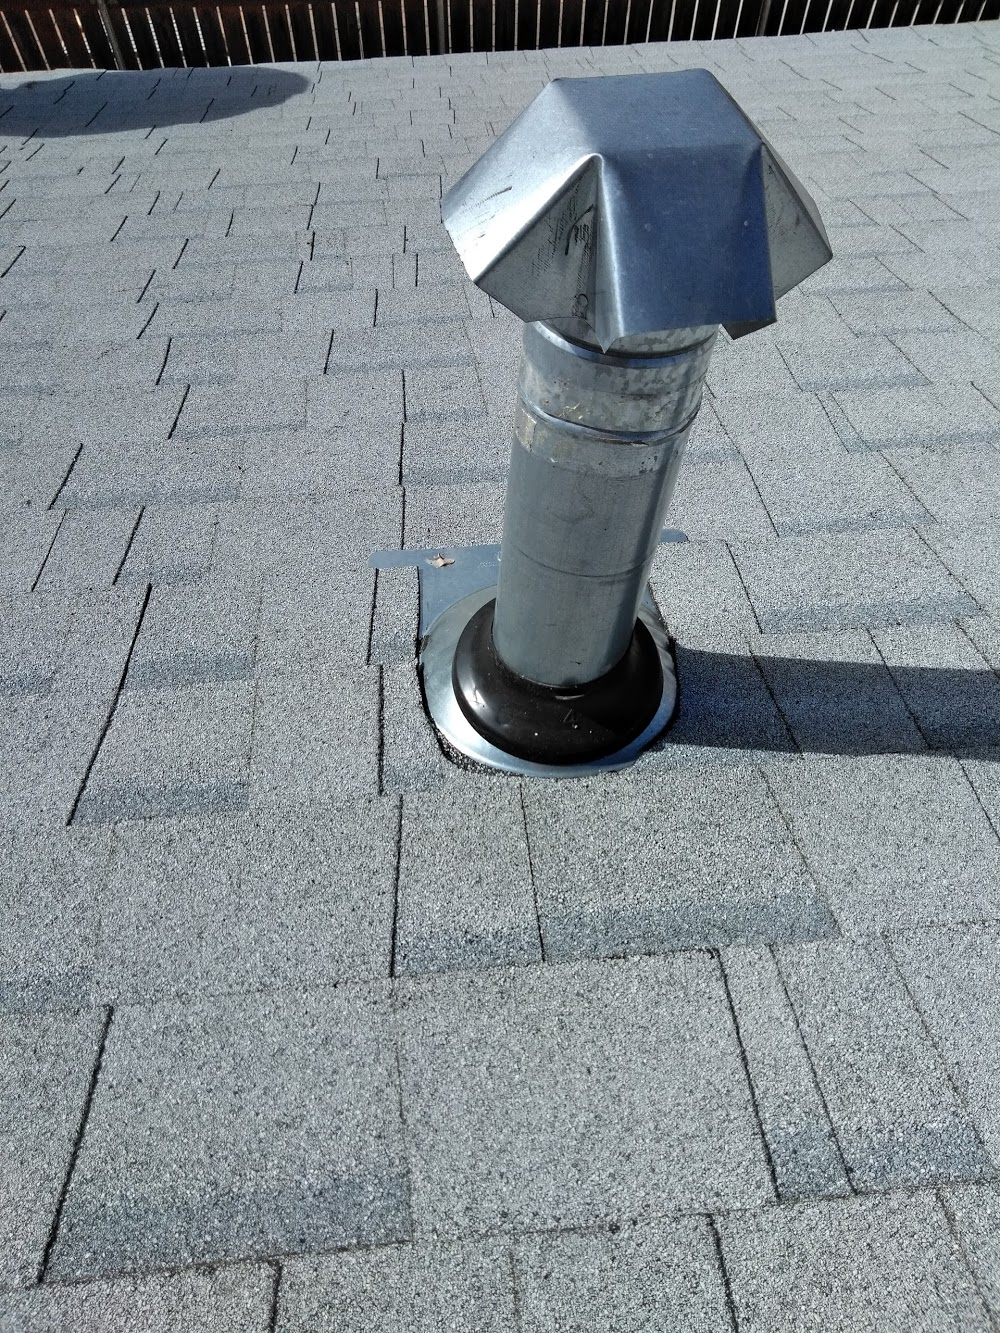 Do-Right Roofing Inc